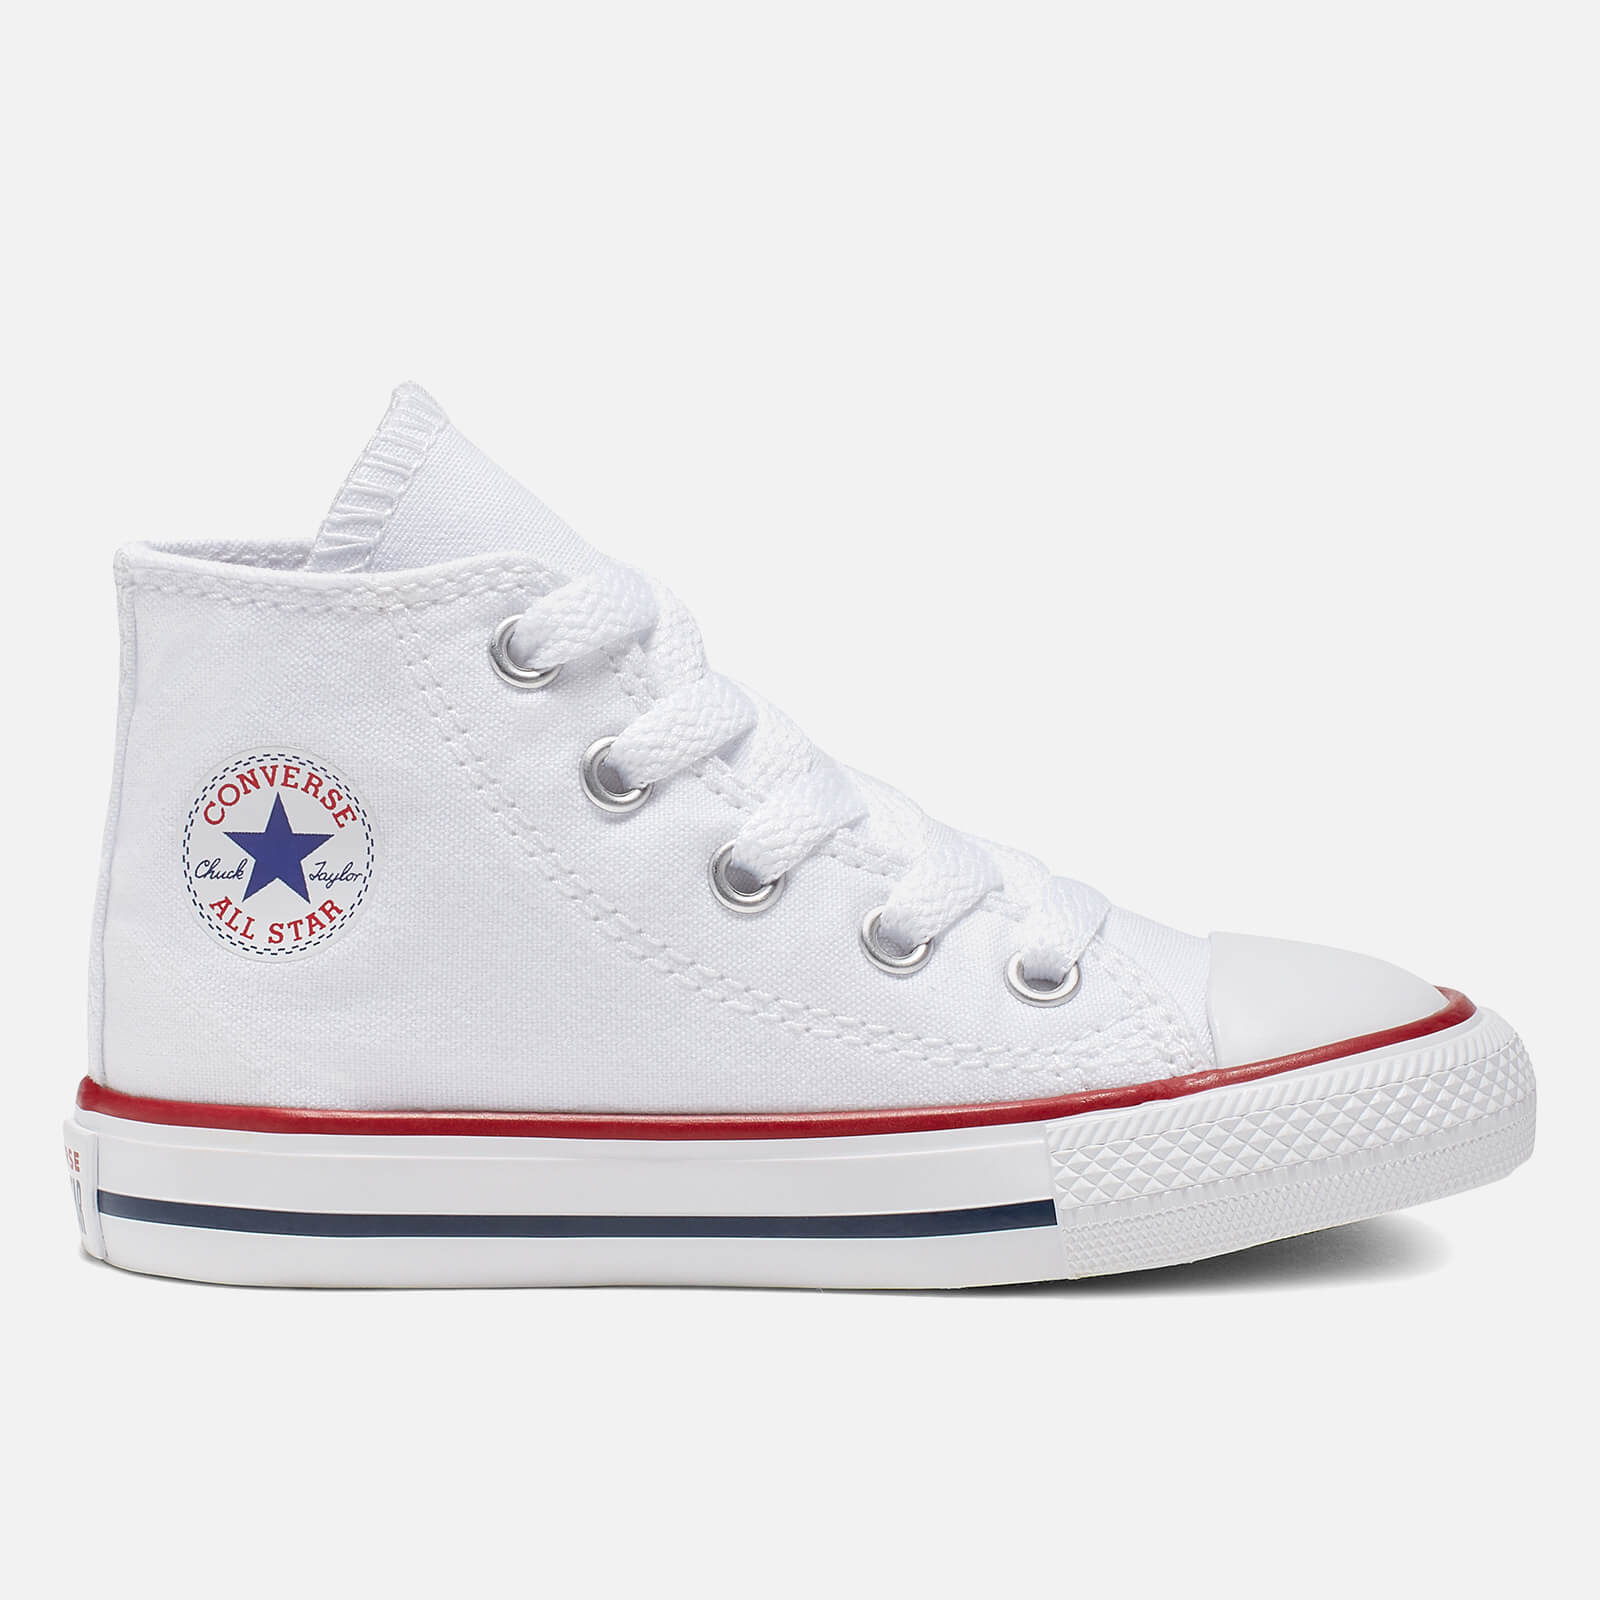 Click to view product details and reviews for Converse Toddlers Chuck Taylor All Star Hi Top Tainers Optical White Uk 2 Toddler.